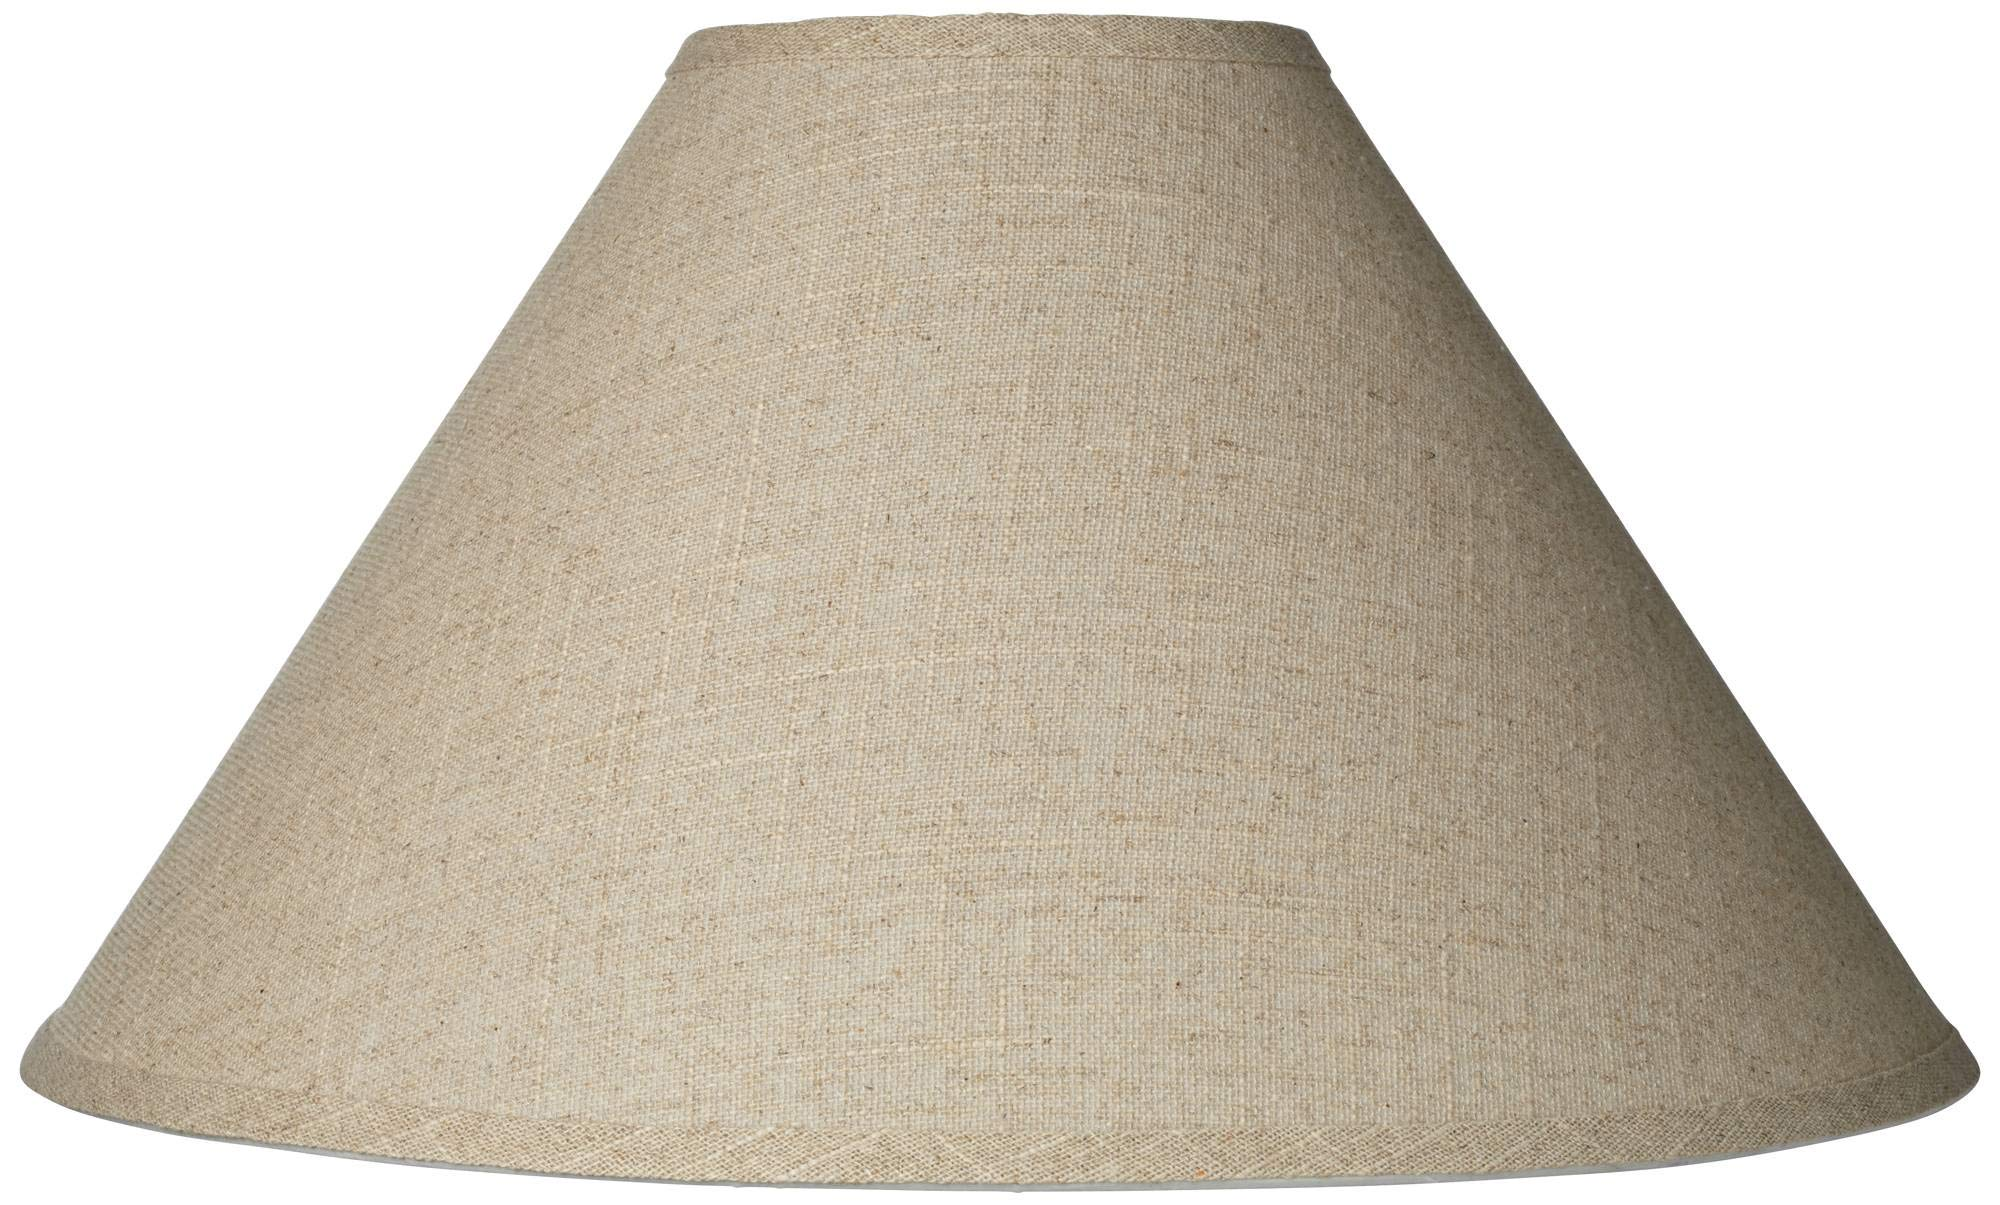 Burlap Empire Lamp Shade Rustic Fabric with Harp 6x19x12 (Spider) - Brentwood by Brentwood